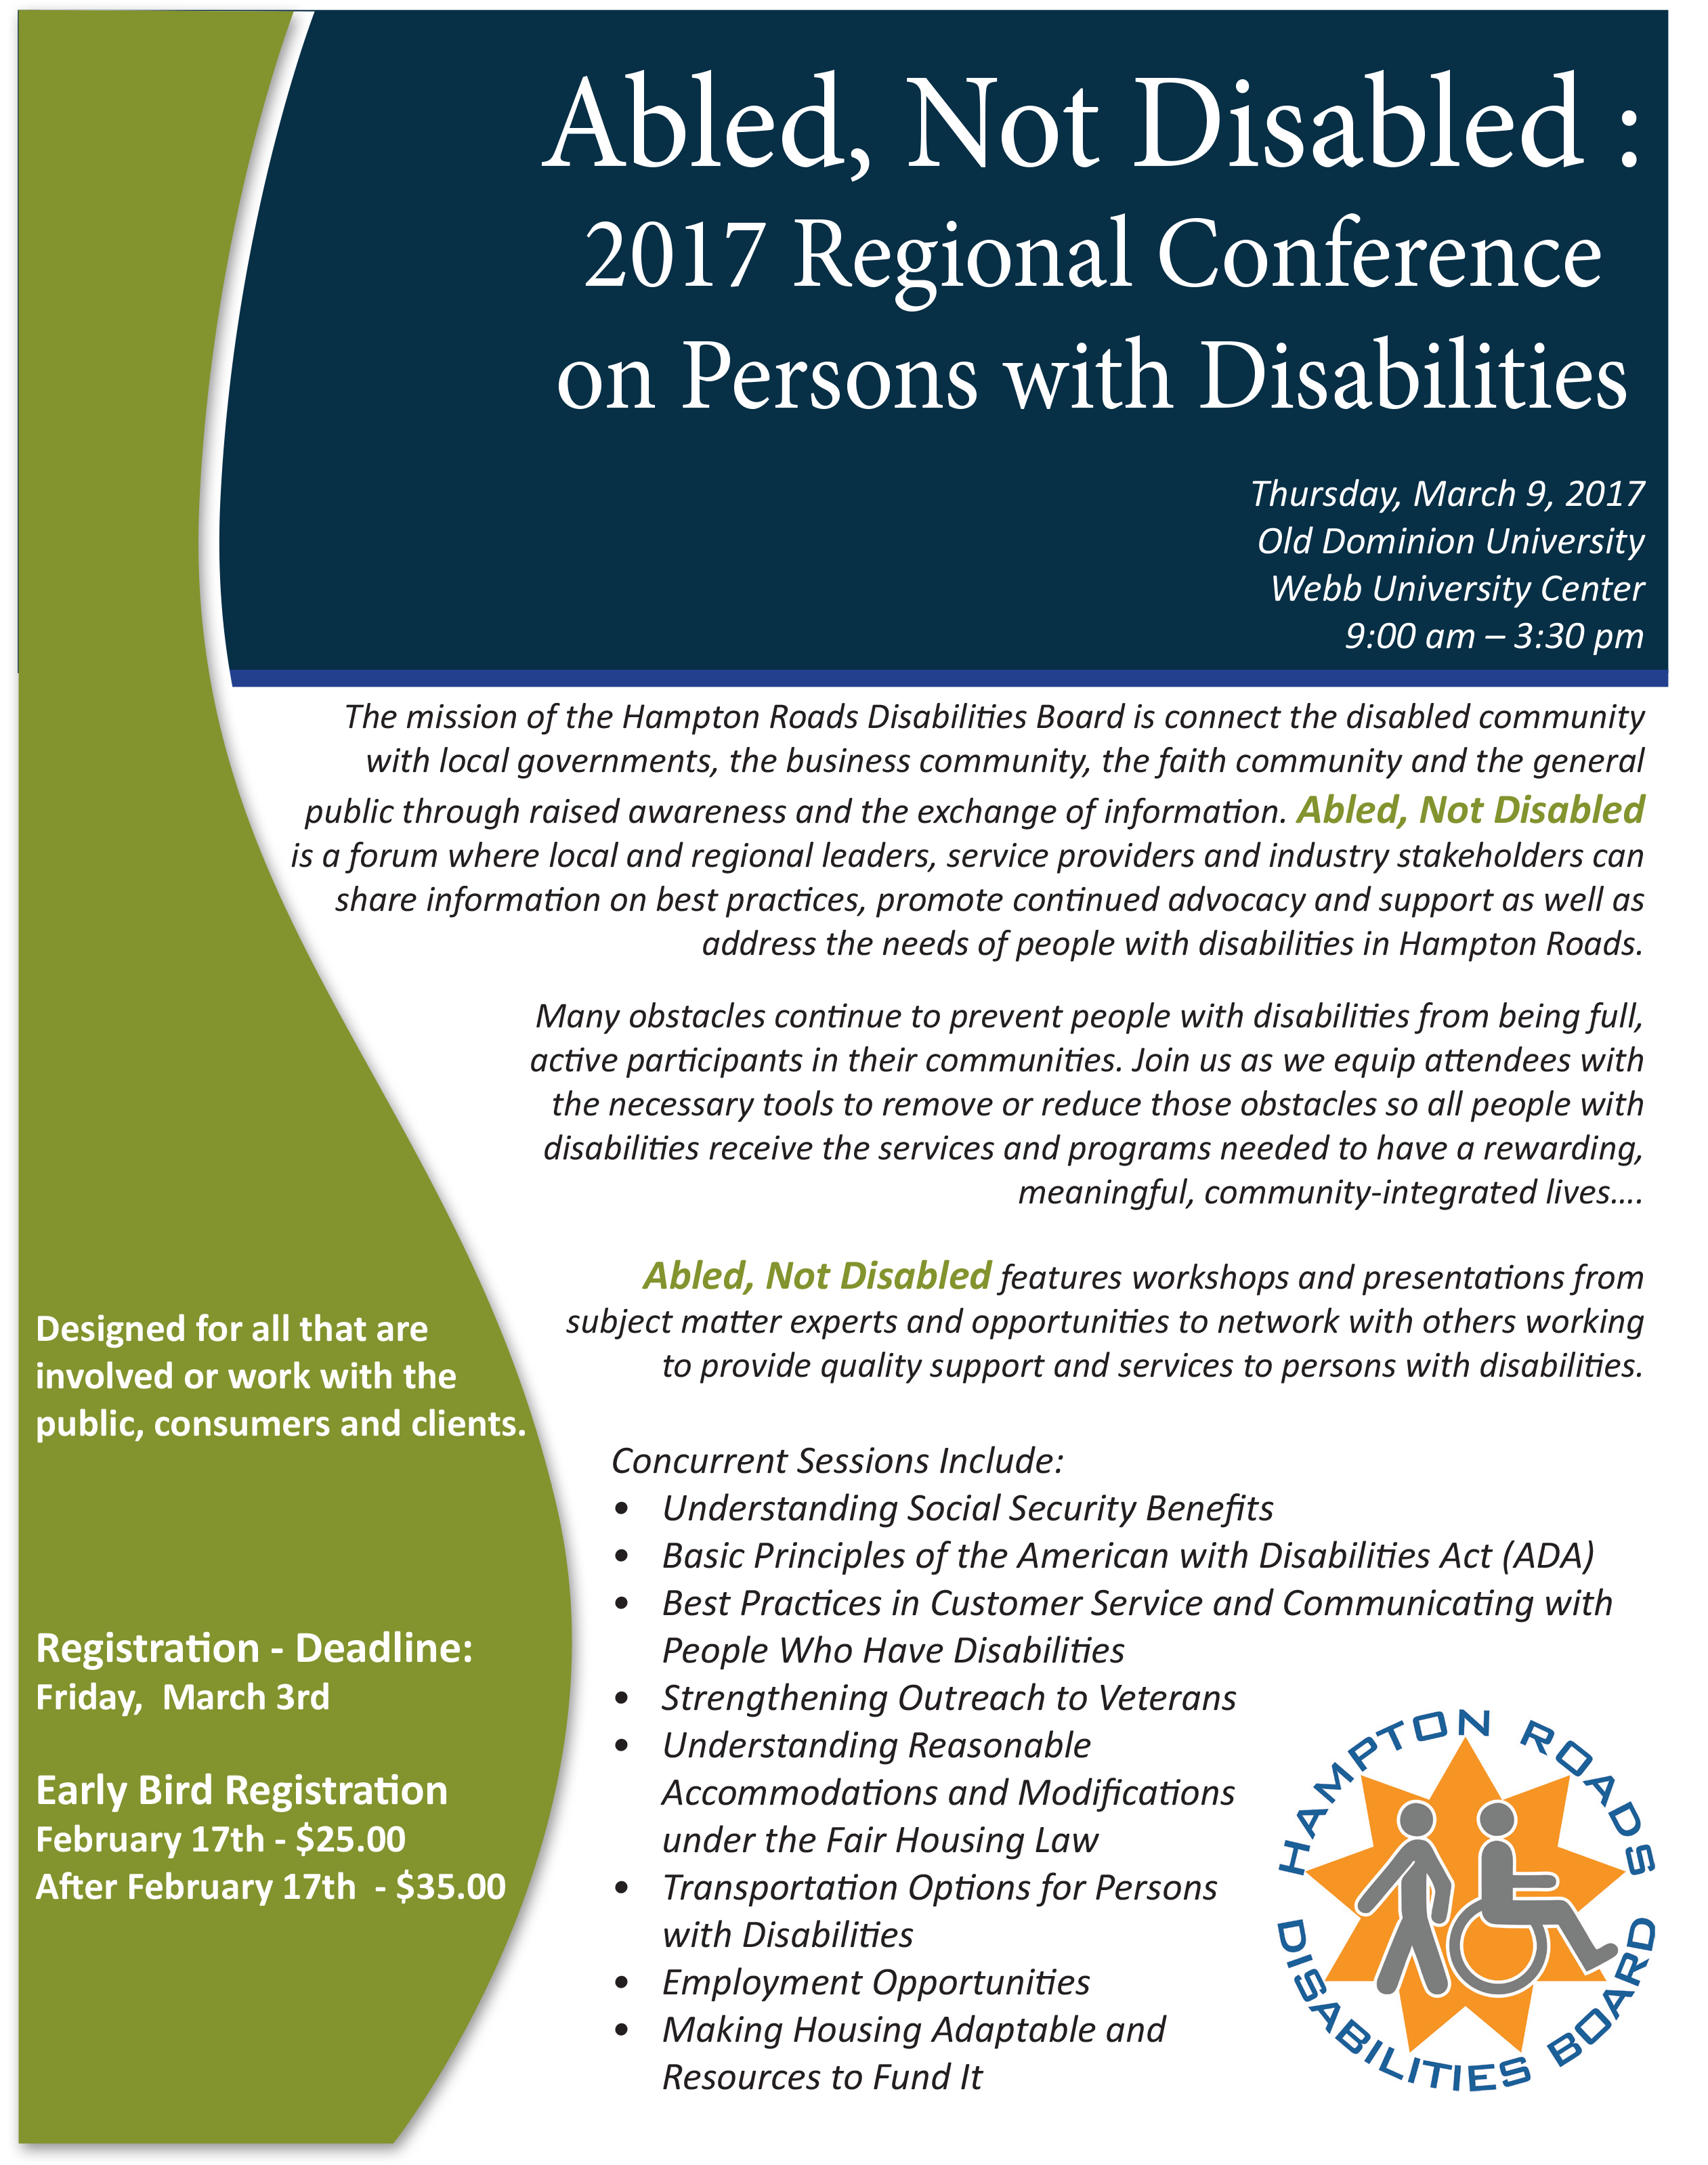 Able, Not Disabled Flyer Image